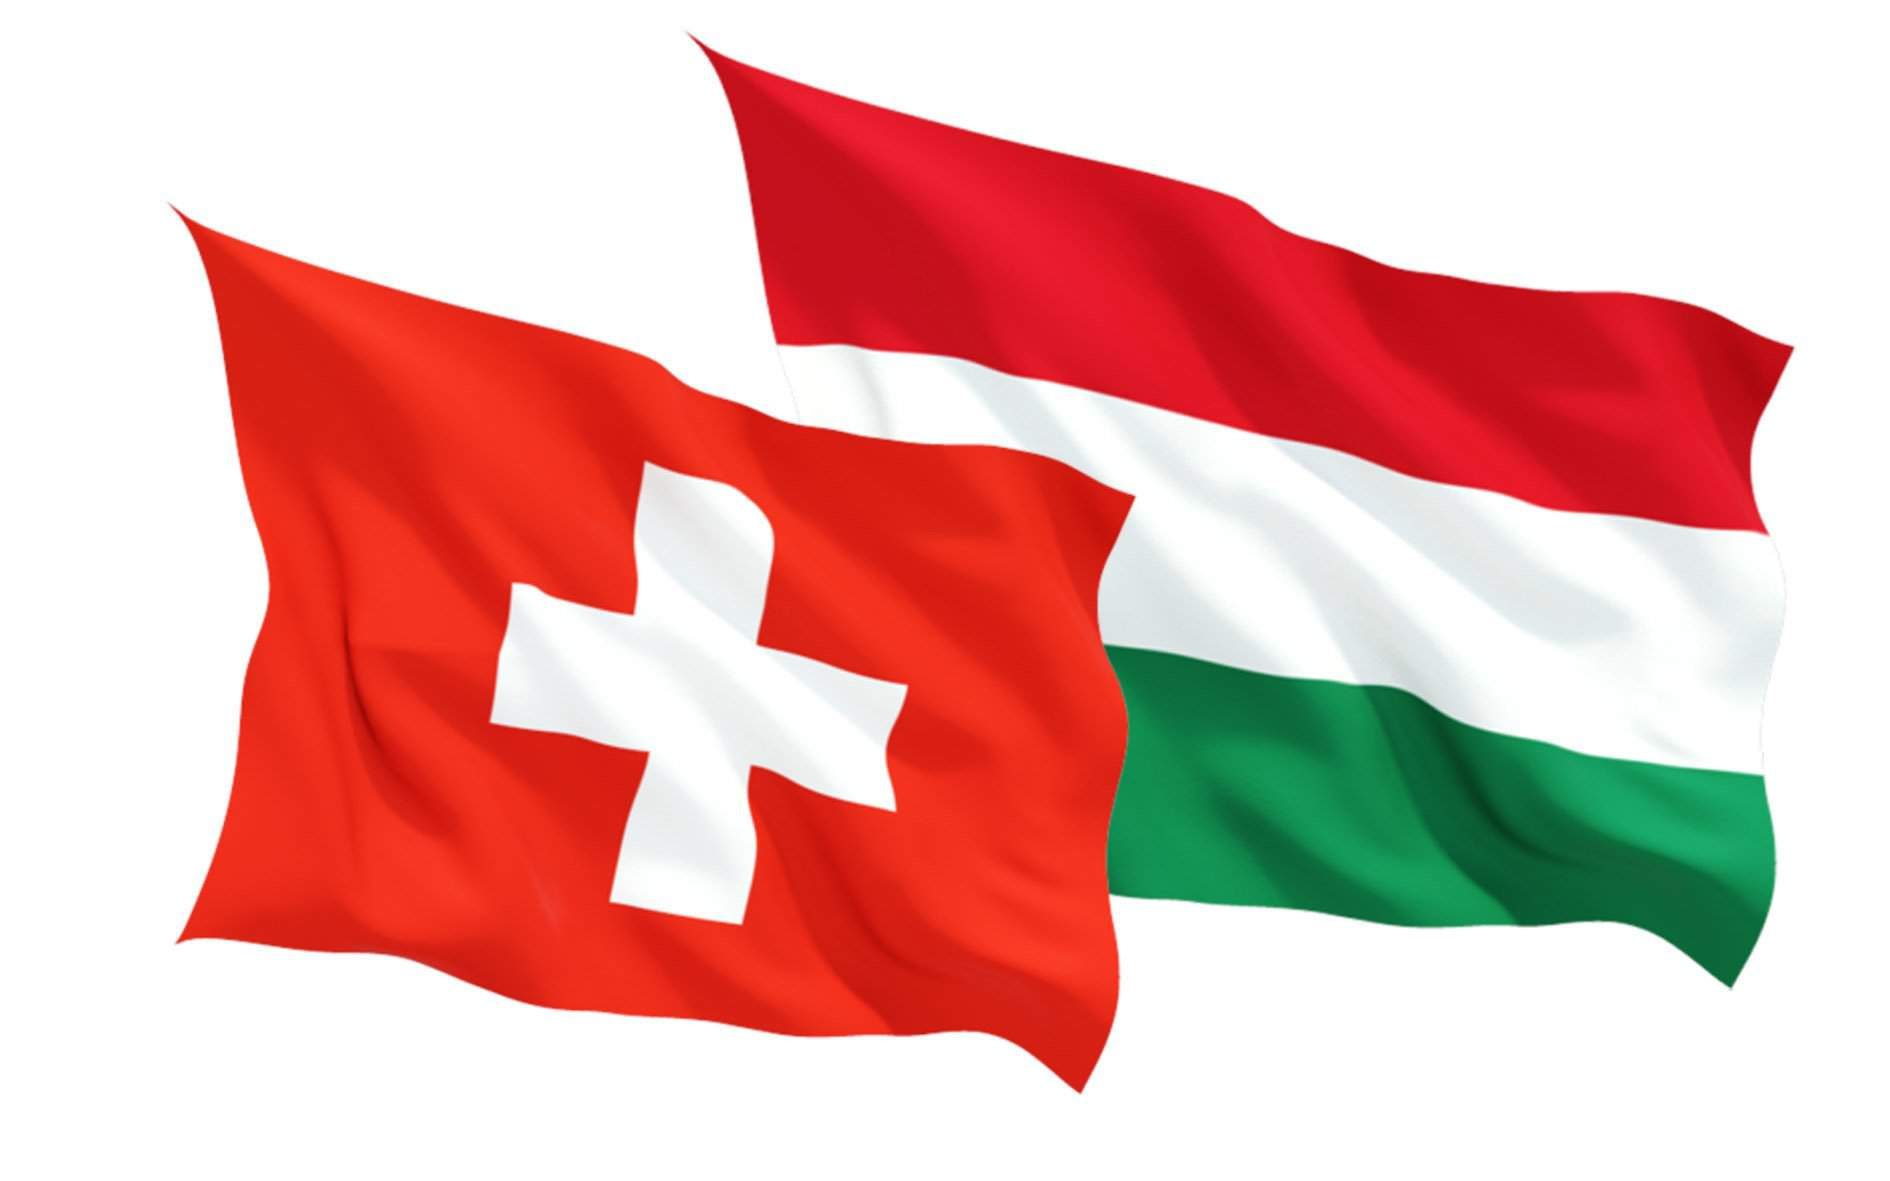 25th anniversary of the founding of Swiss food giant Nestle's Hungarian subsidiary in Hungary